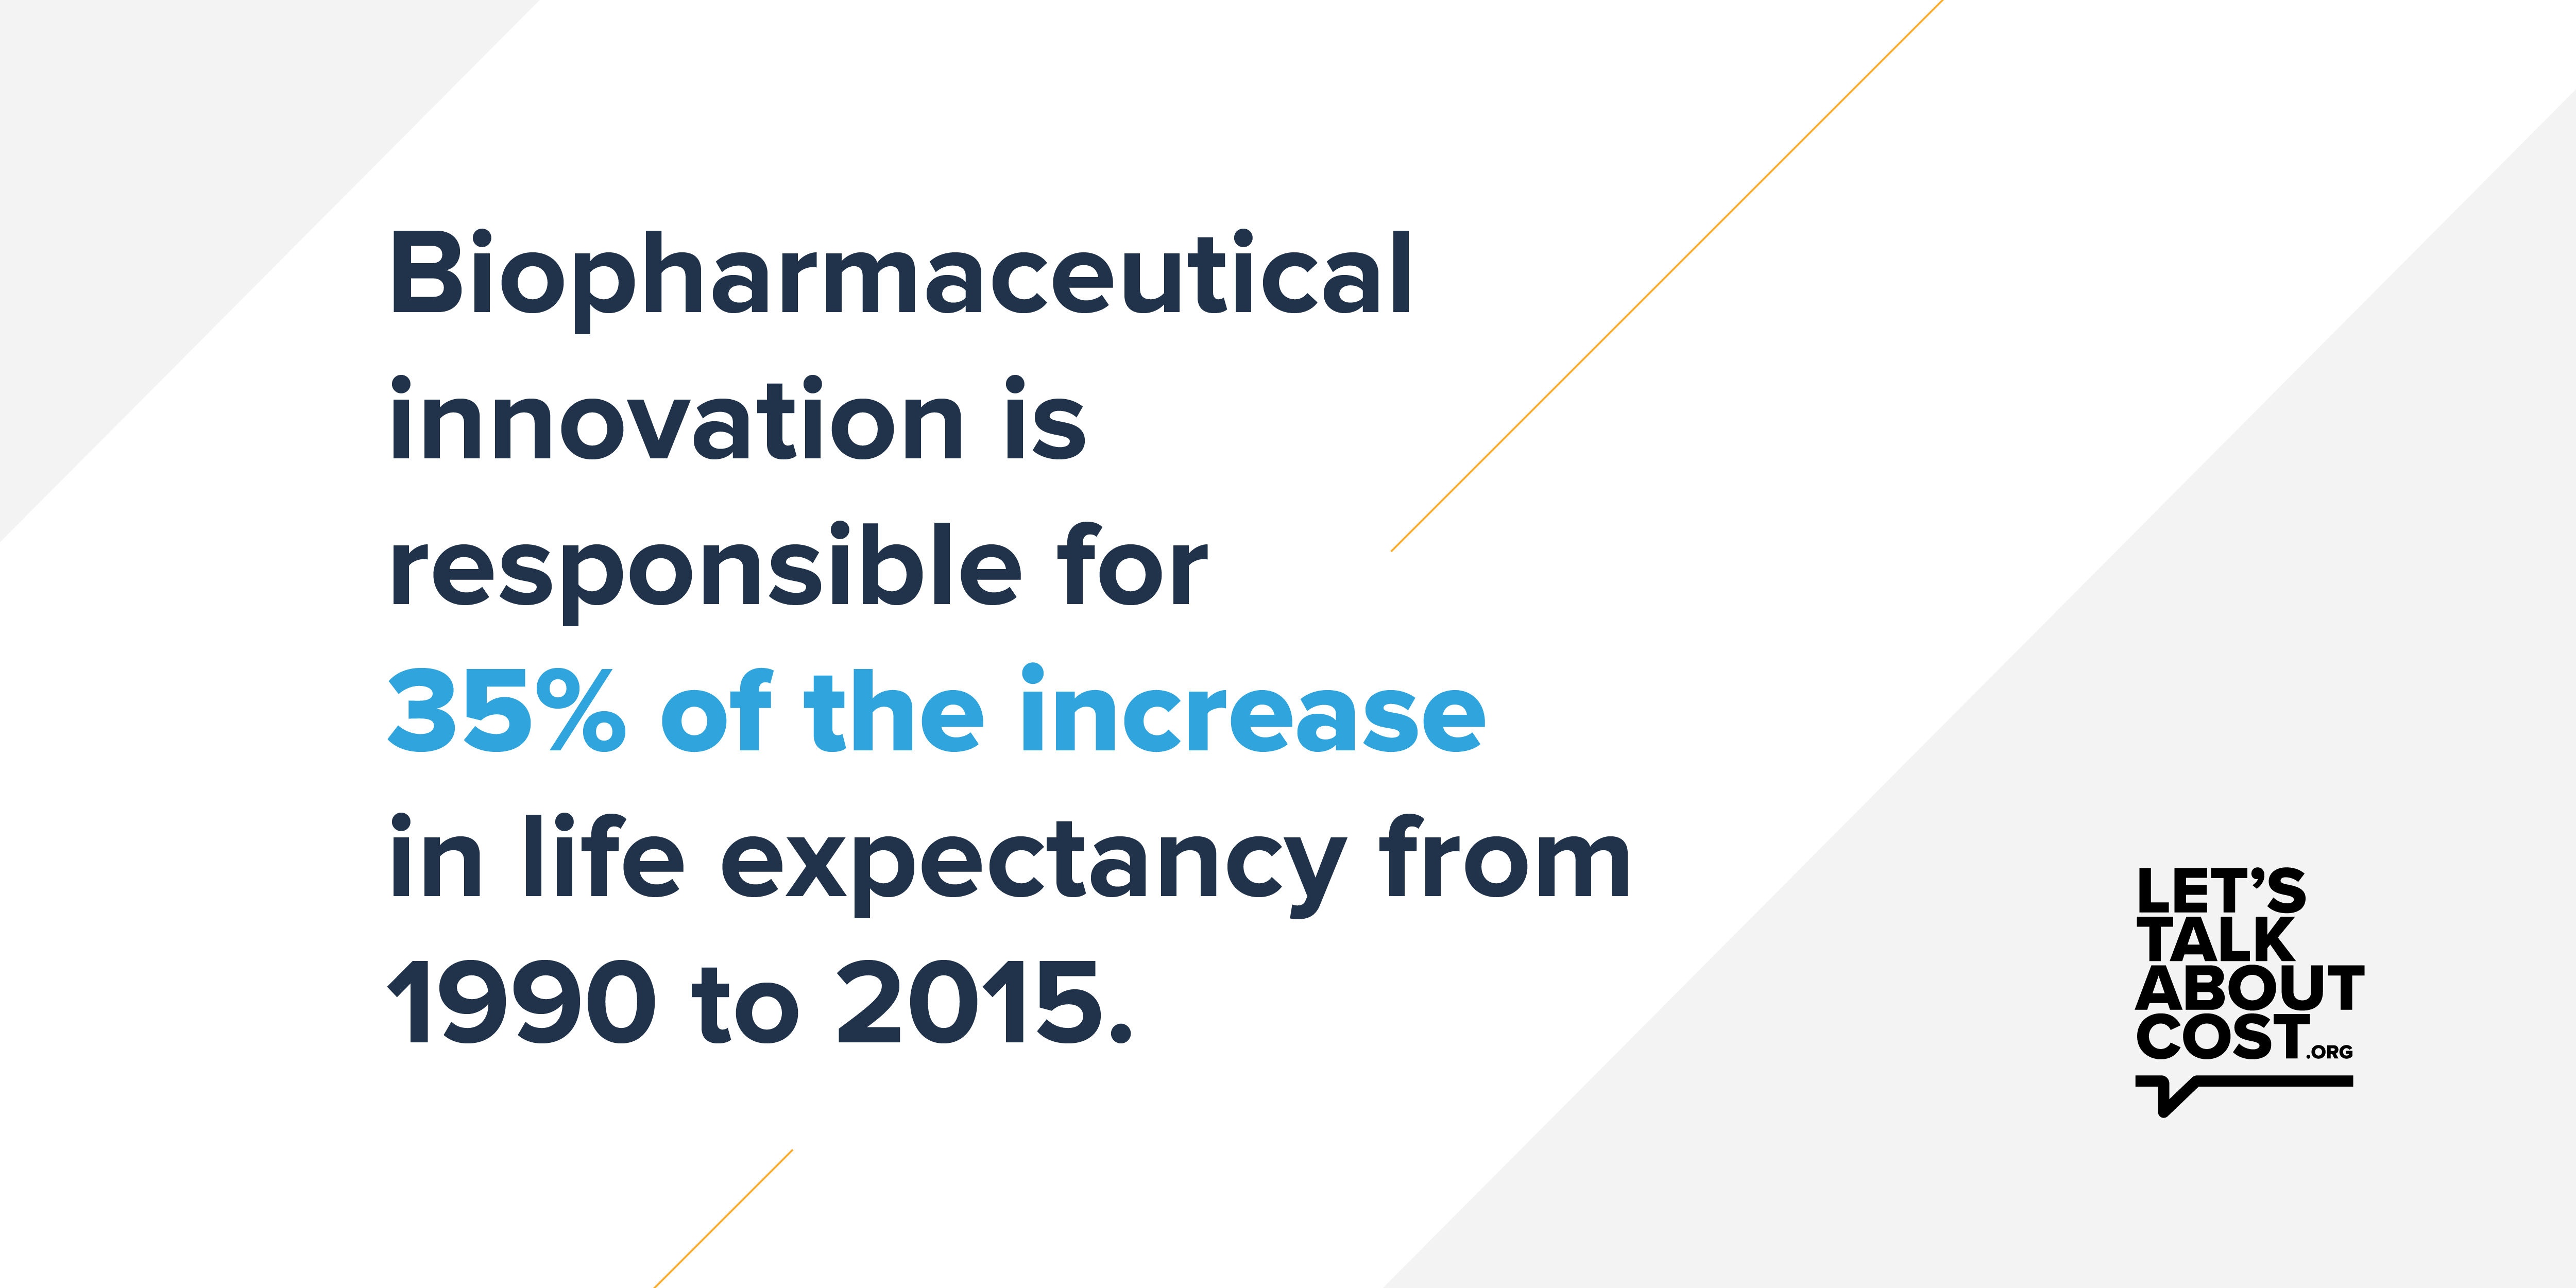 Study finds biopharmaceutical innovation is responsible for 35% of the increase in life expectancy from 1990 to 2015